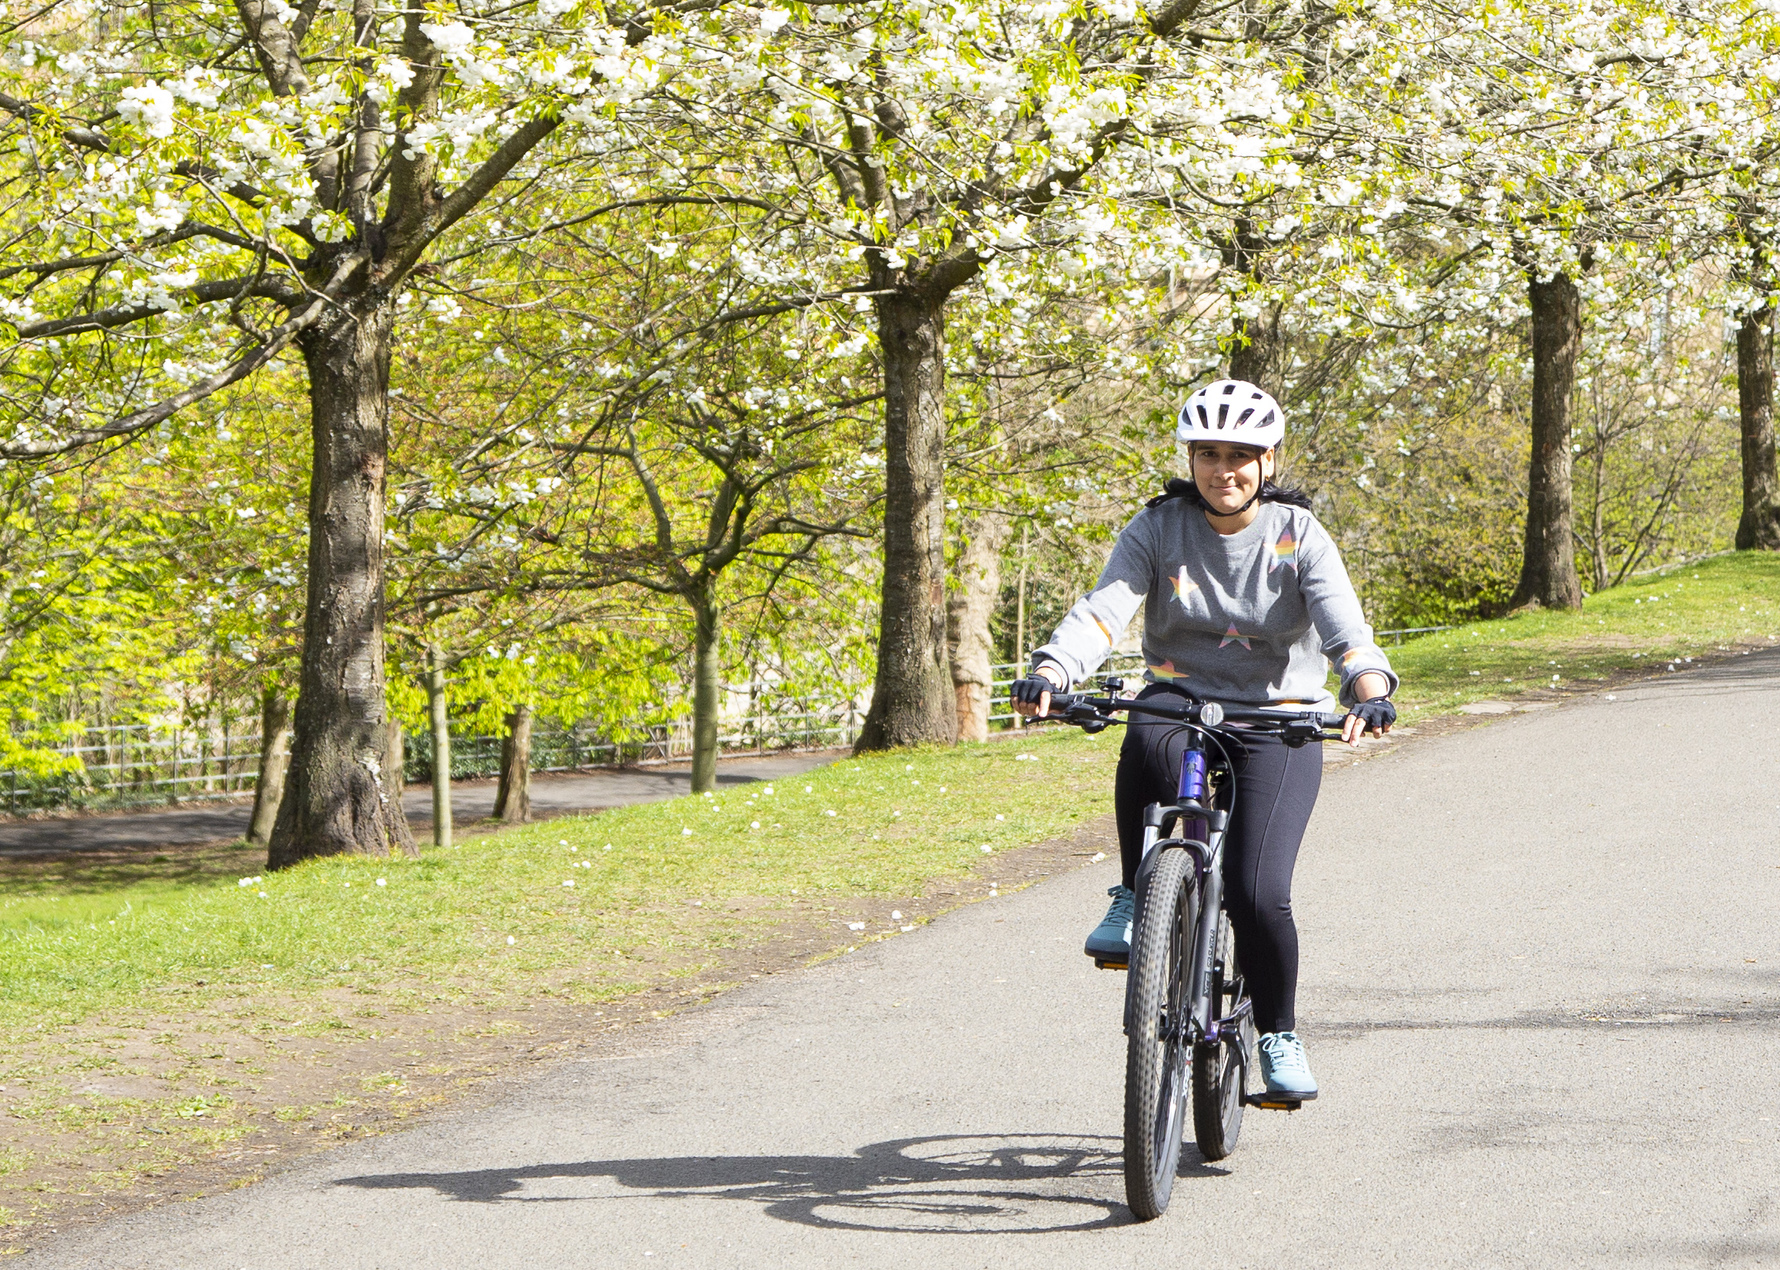 a woman cycling in the park with cherry blossom trees in the background